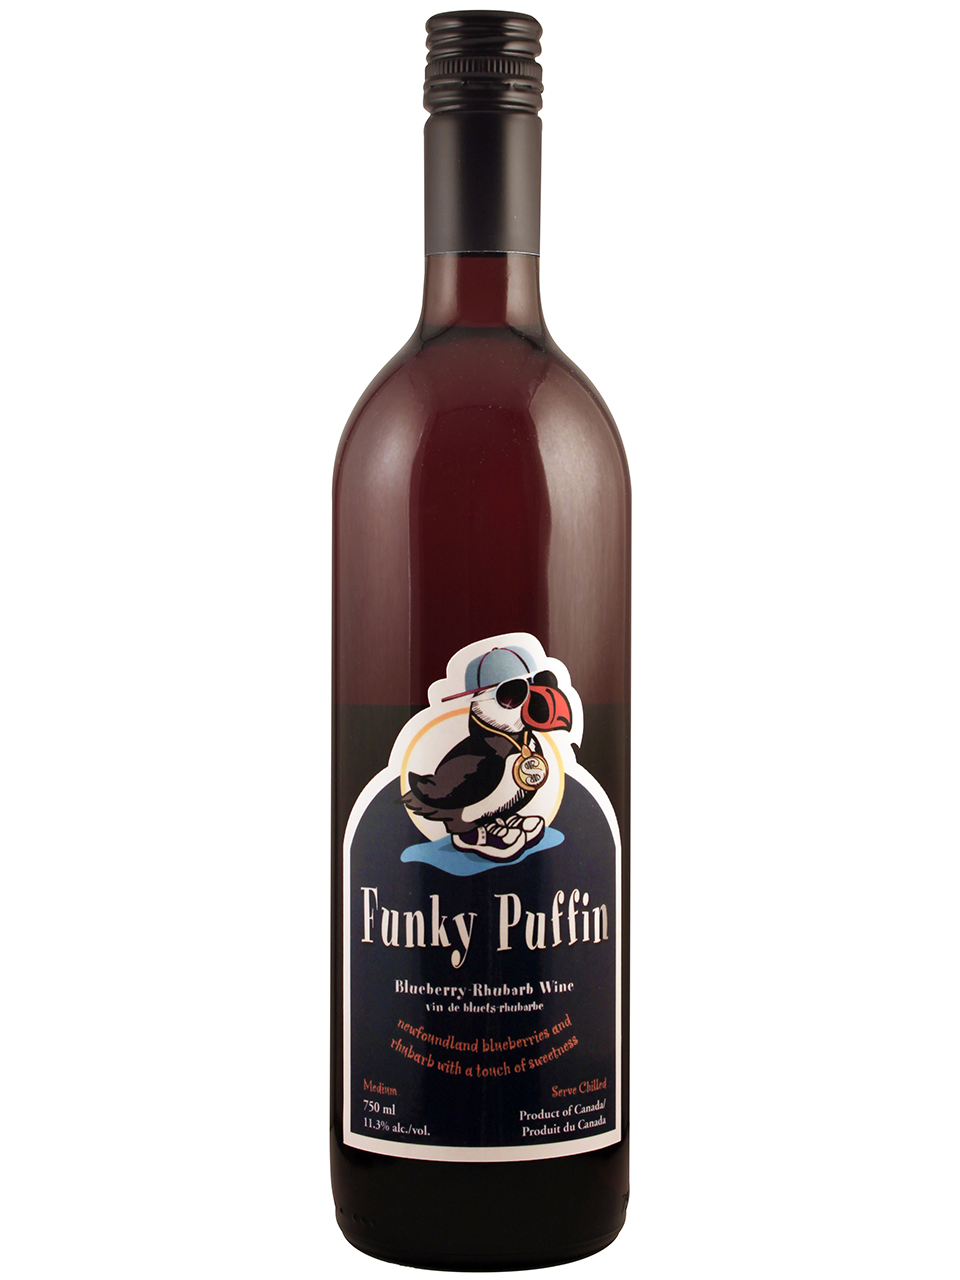 Funky Puffin Blueberry Rhubarb